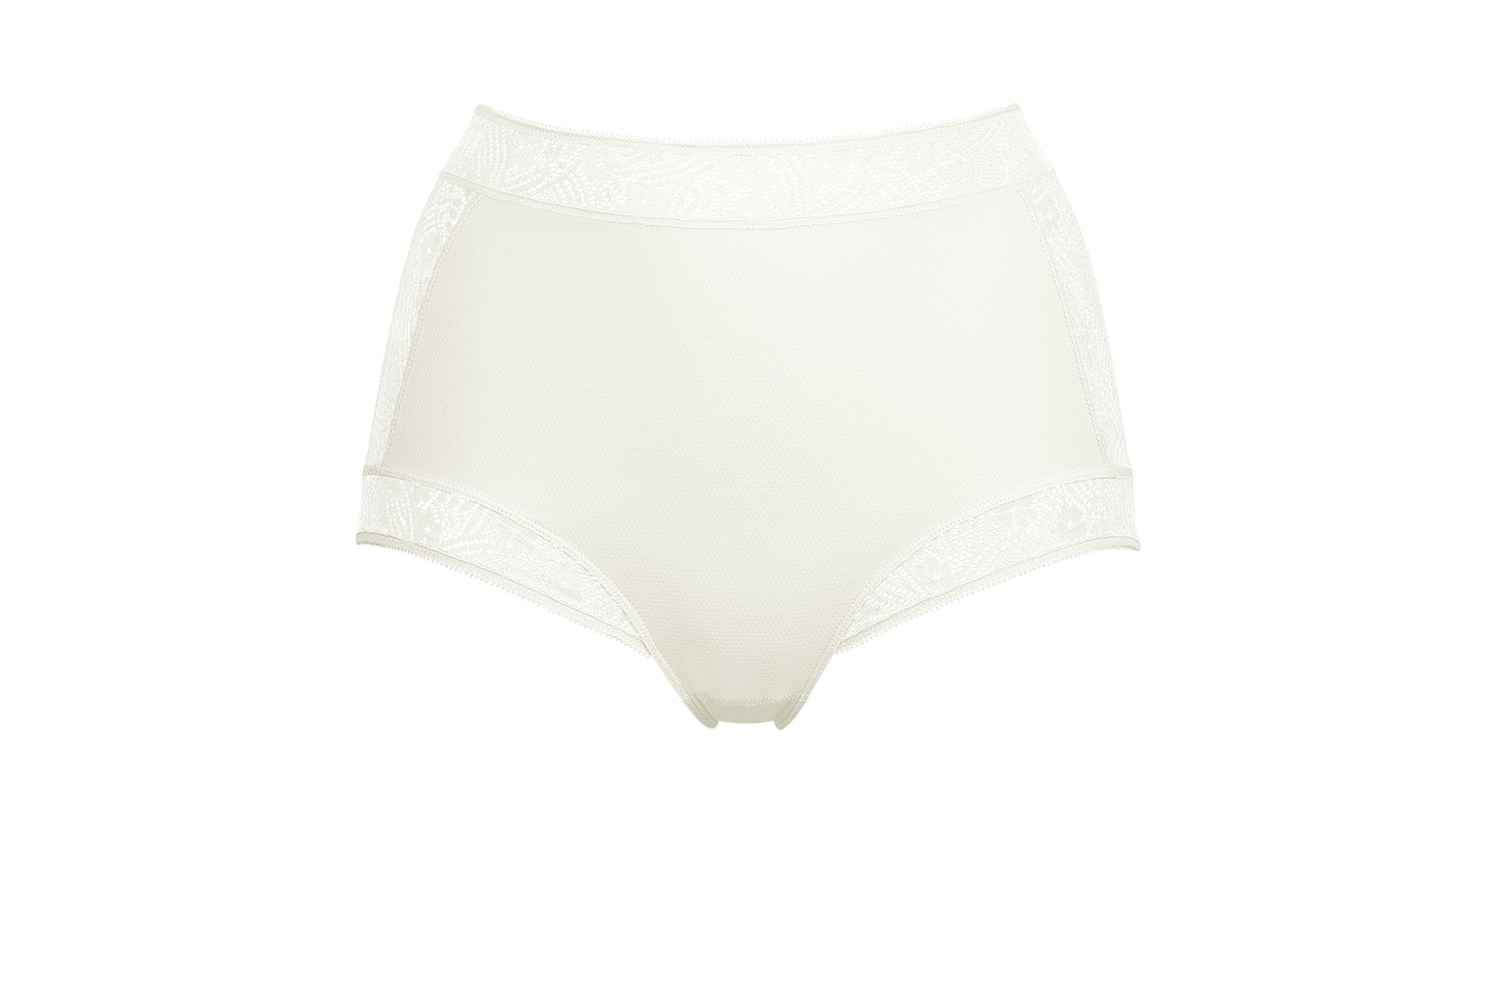 Fleur High-waisted brief standard view 3